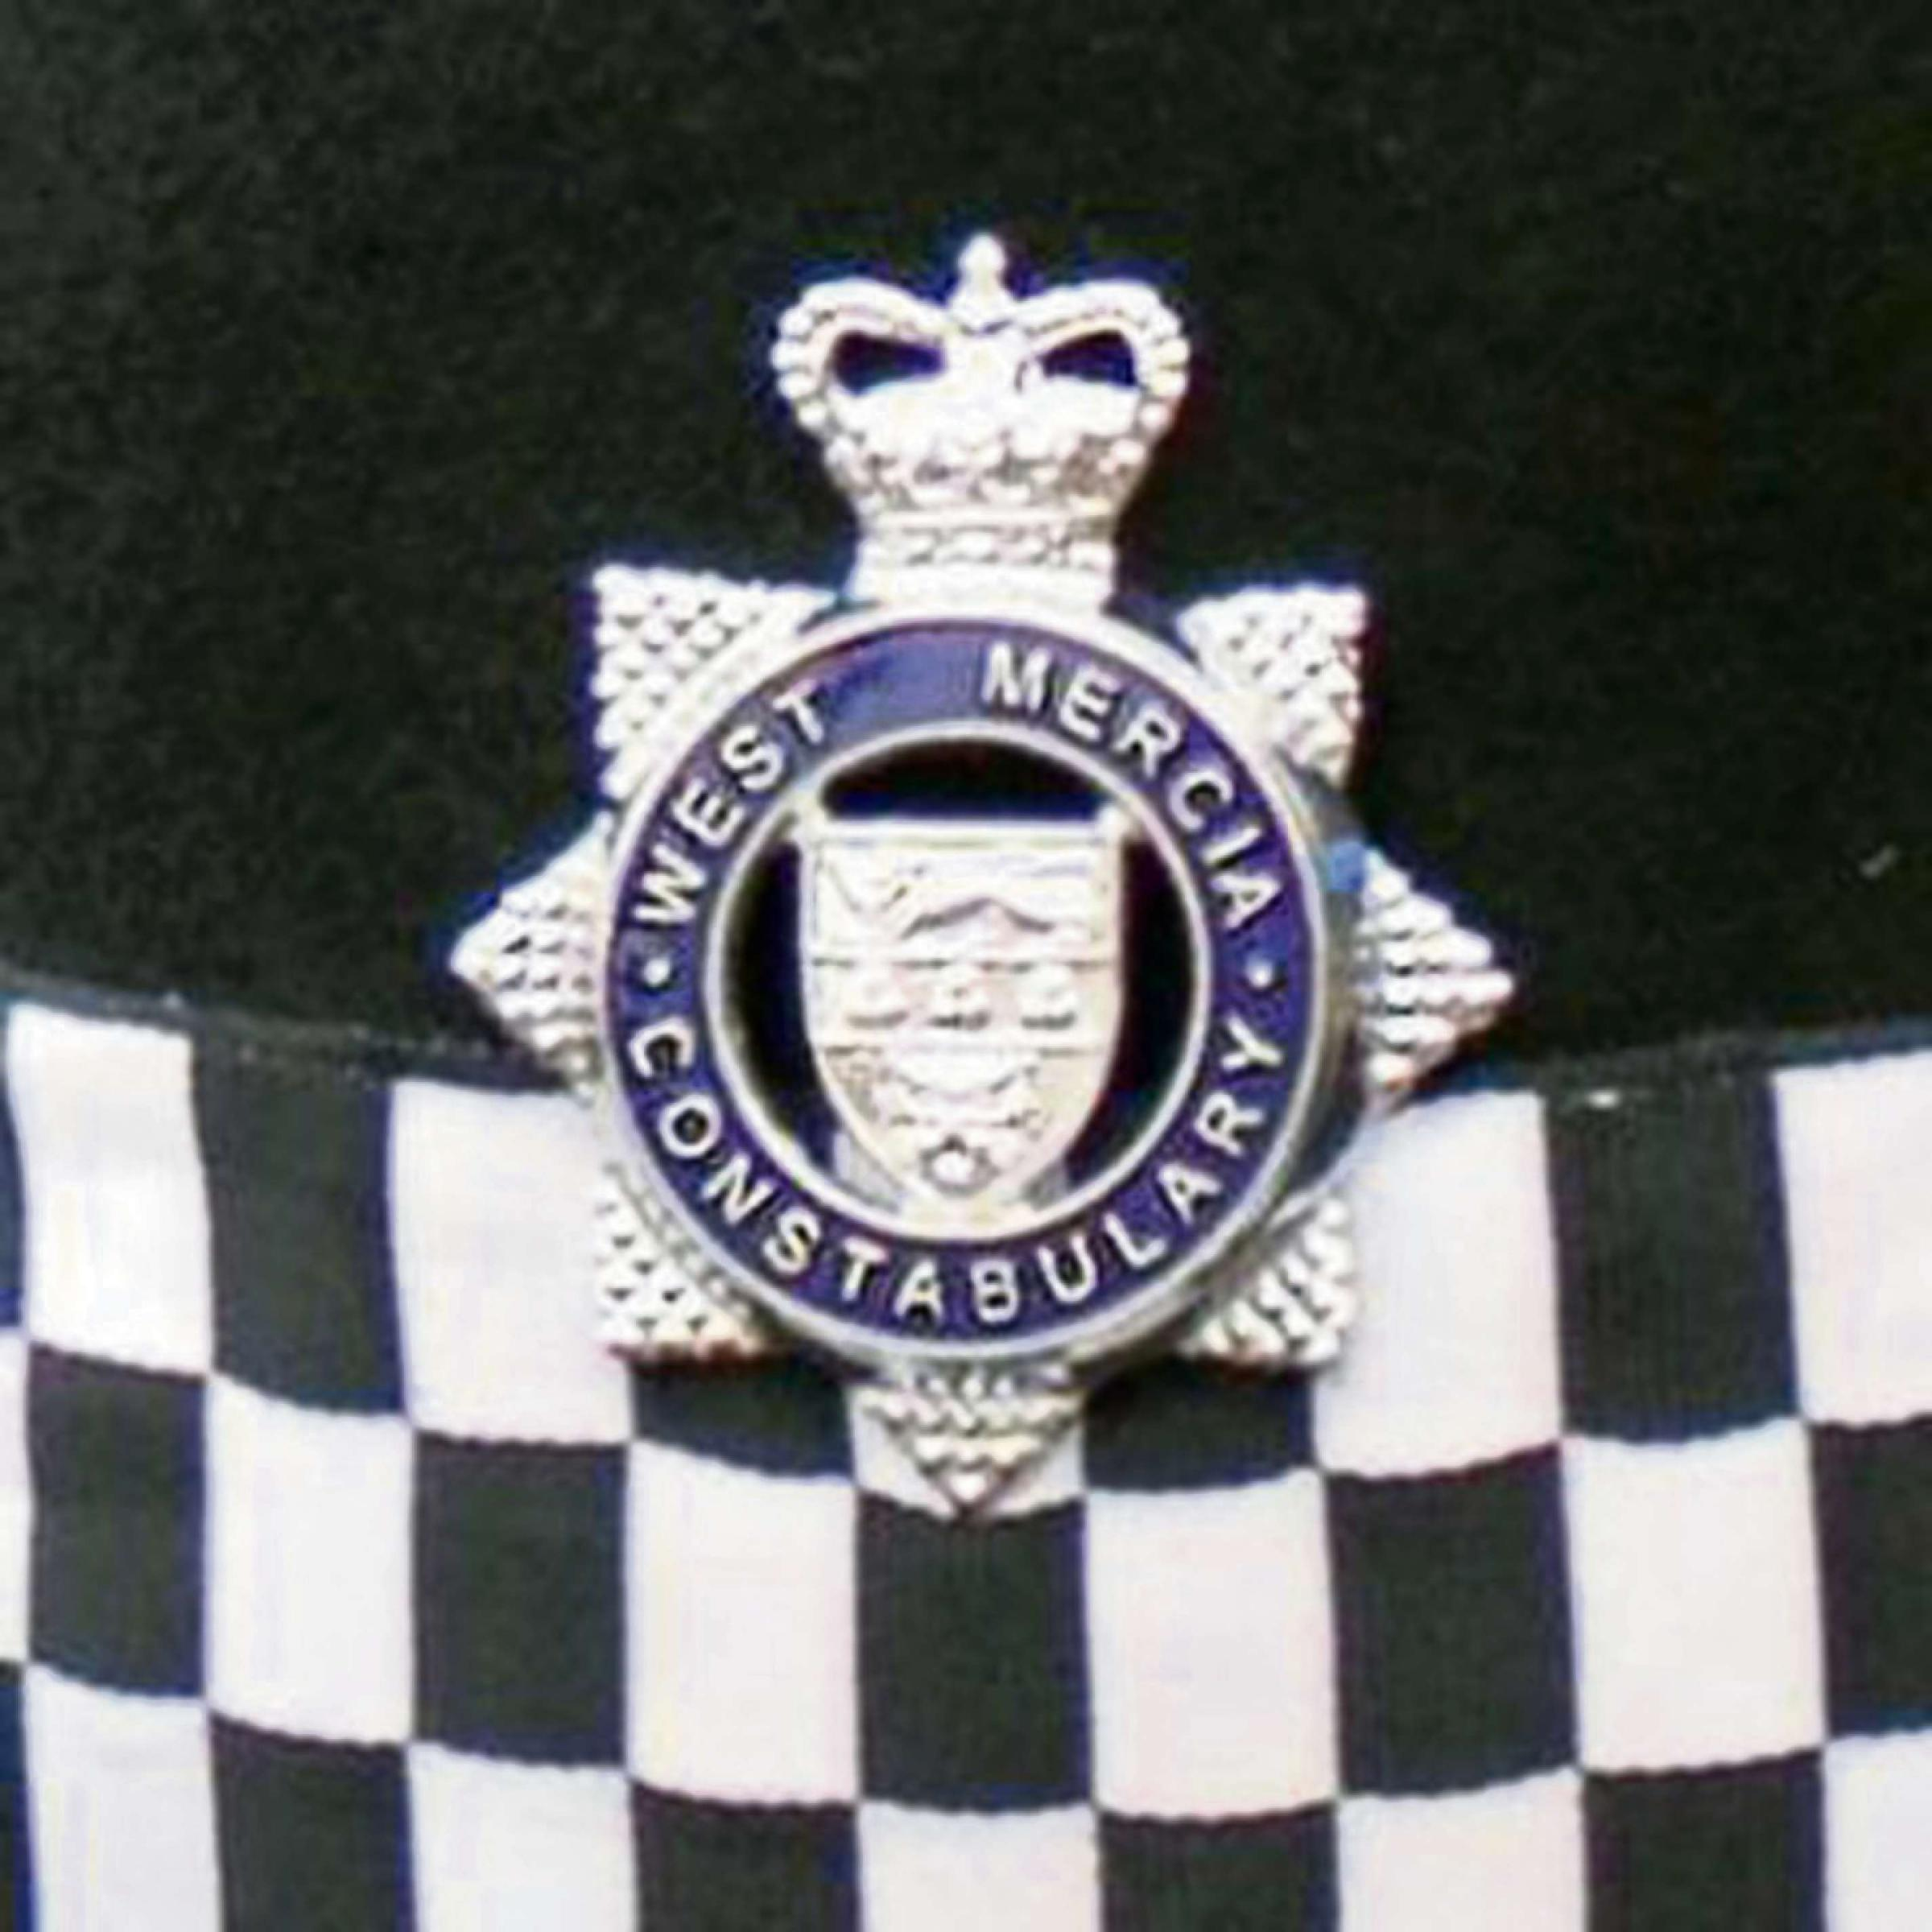 Scrap metal and batteries stolen from Herefordshire farm